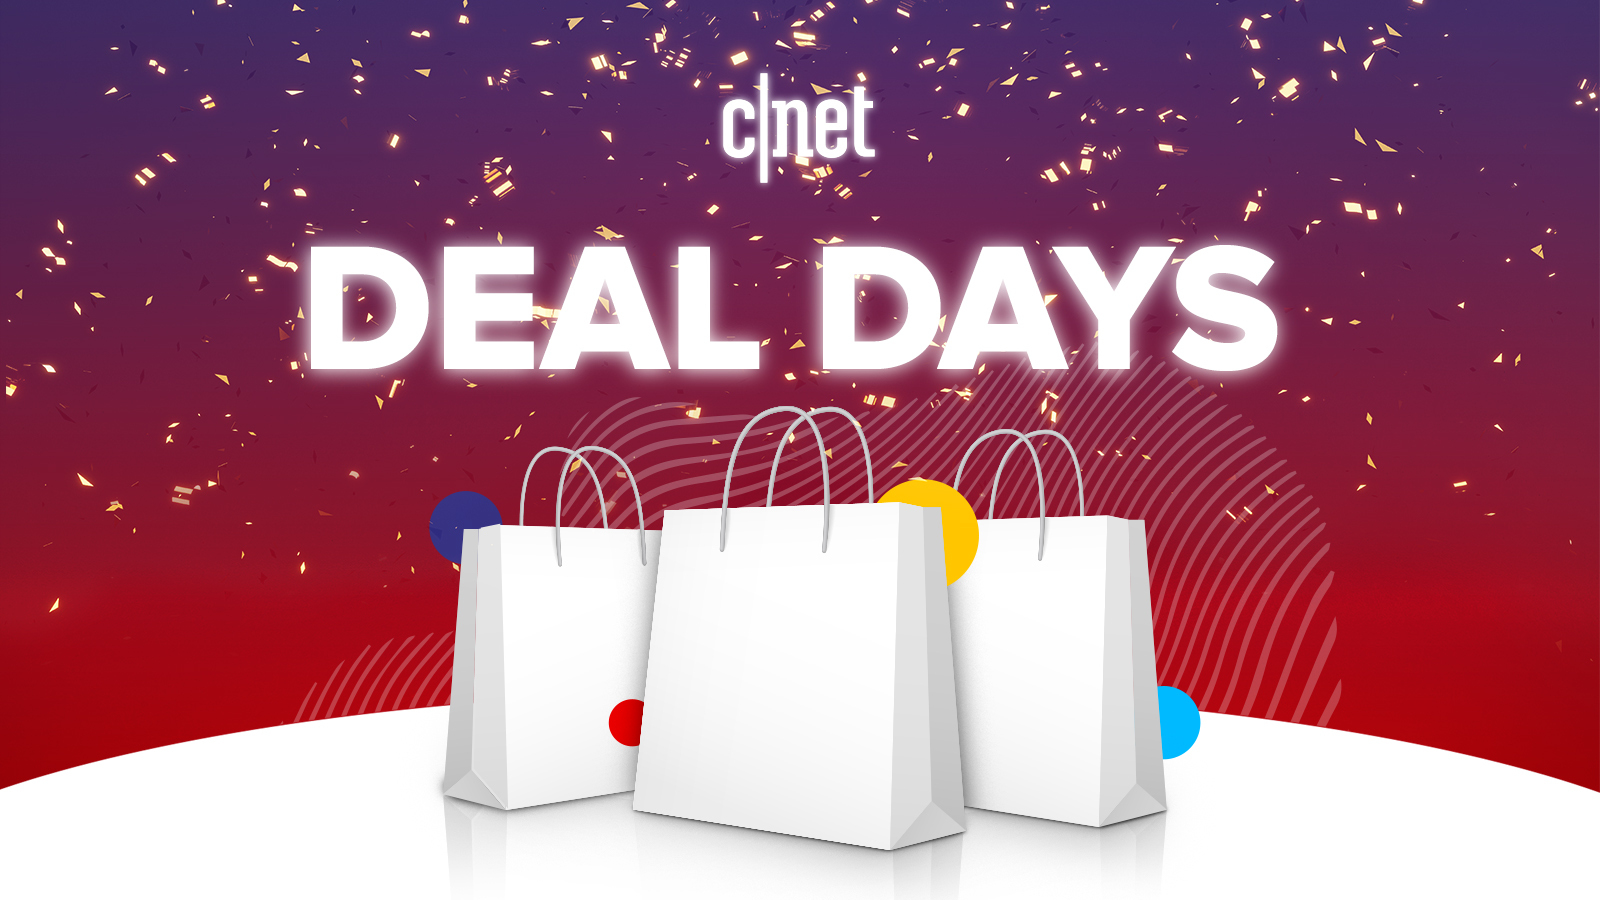 CNET Deal Days: Two days of pre-Black Friday deals start Oct. 19